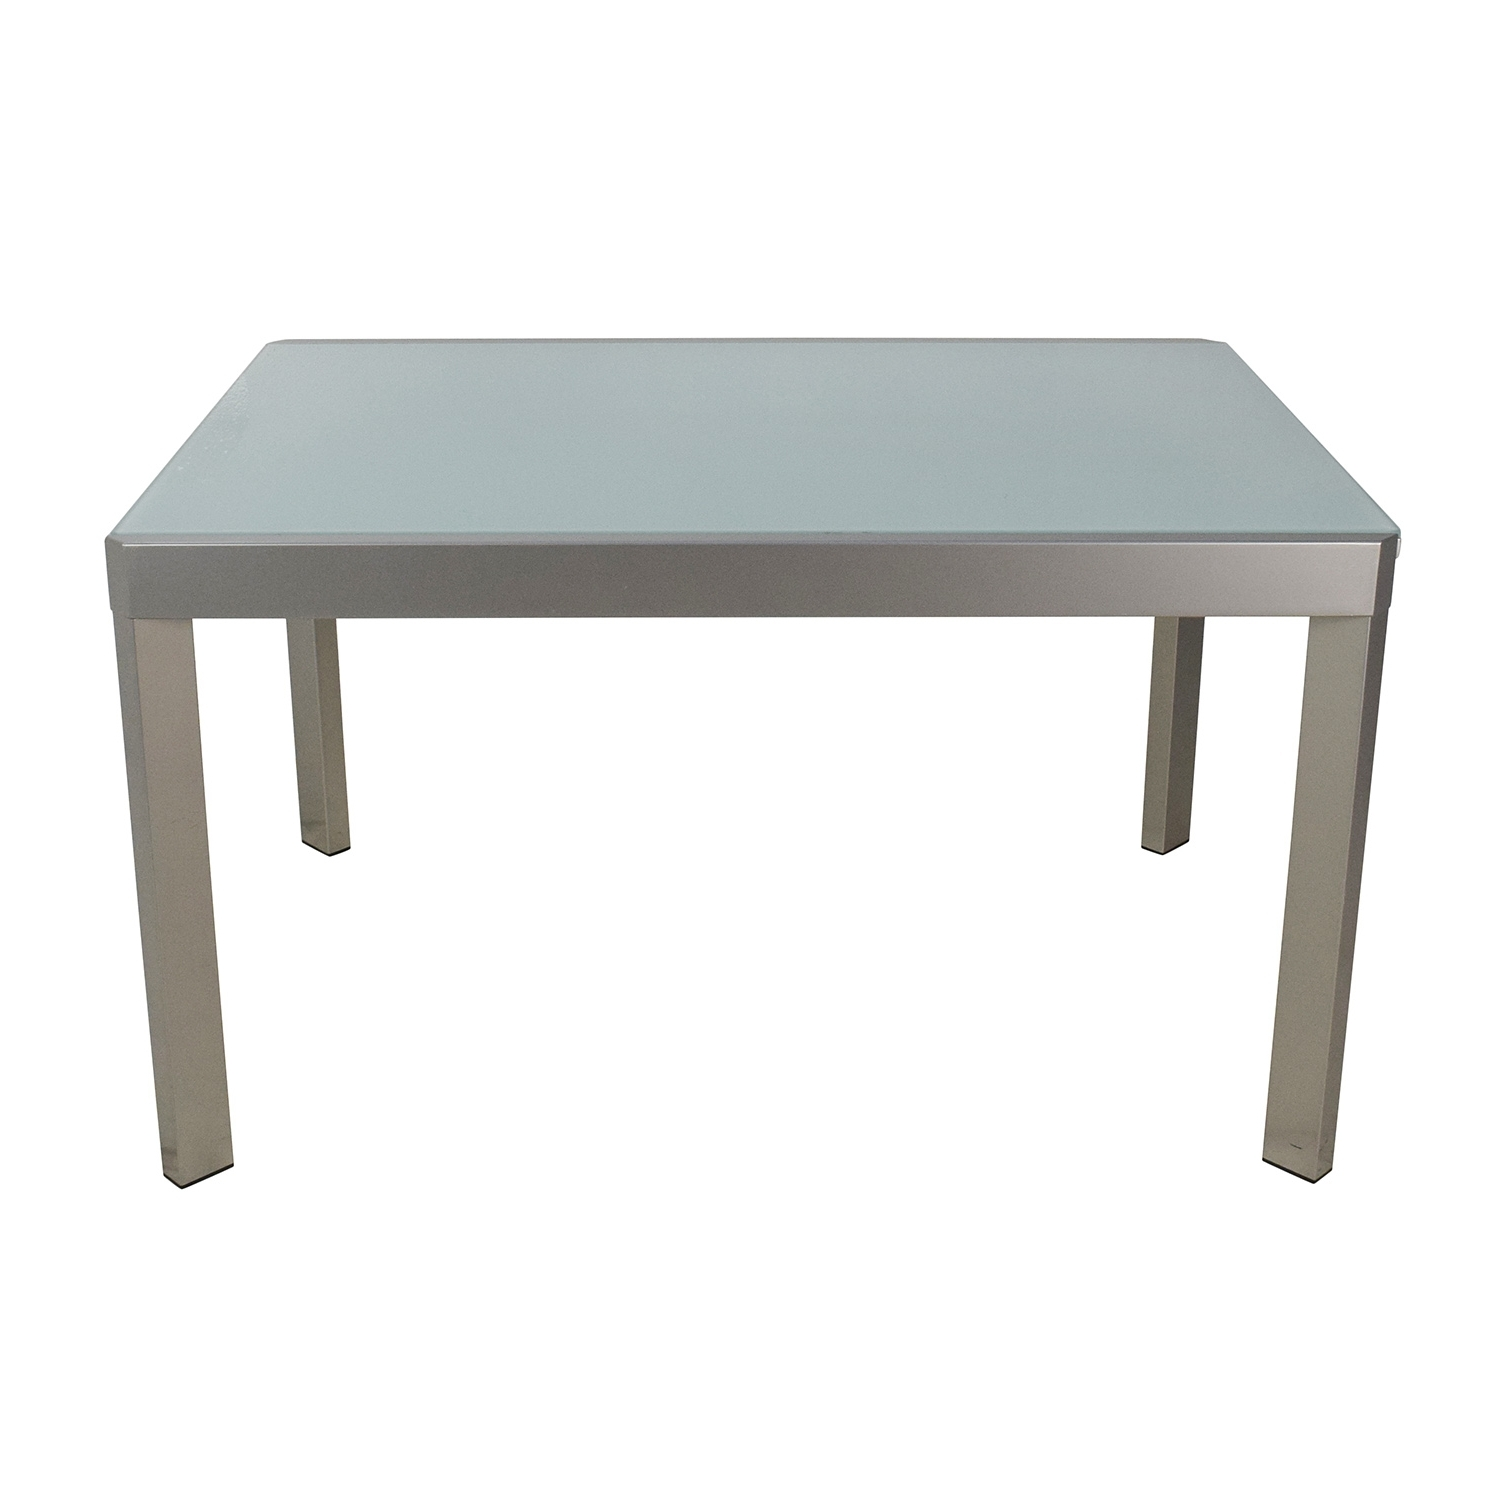 [%86% Off – Calligaris Calligaris Extendable Glass Dining Table / Tables With Preferred Extendable Glass Dining Tables|Extendable Glass Dining Tables In Preferred 86% Off – Calligaris Calligaris Extendable Glass Dining Table / Tables|Most Popular Extendable Glass Dining Tables Throughout 86% Off – Calligaris Calligaris Extendable Glass Dining Table / Tables|Fashionable 86% Off – Calligaris Calligaris Extendable Glass Dining Table / Tables In Extendable Glass Dining Tables%] (View 22 of 25)